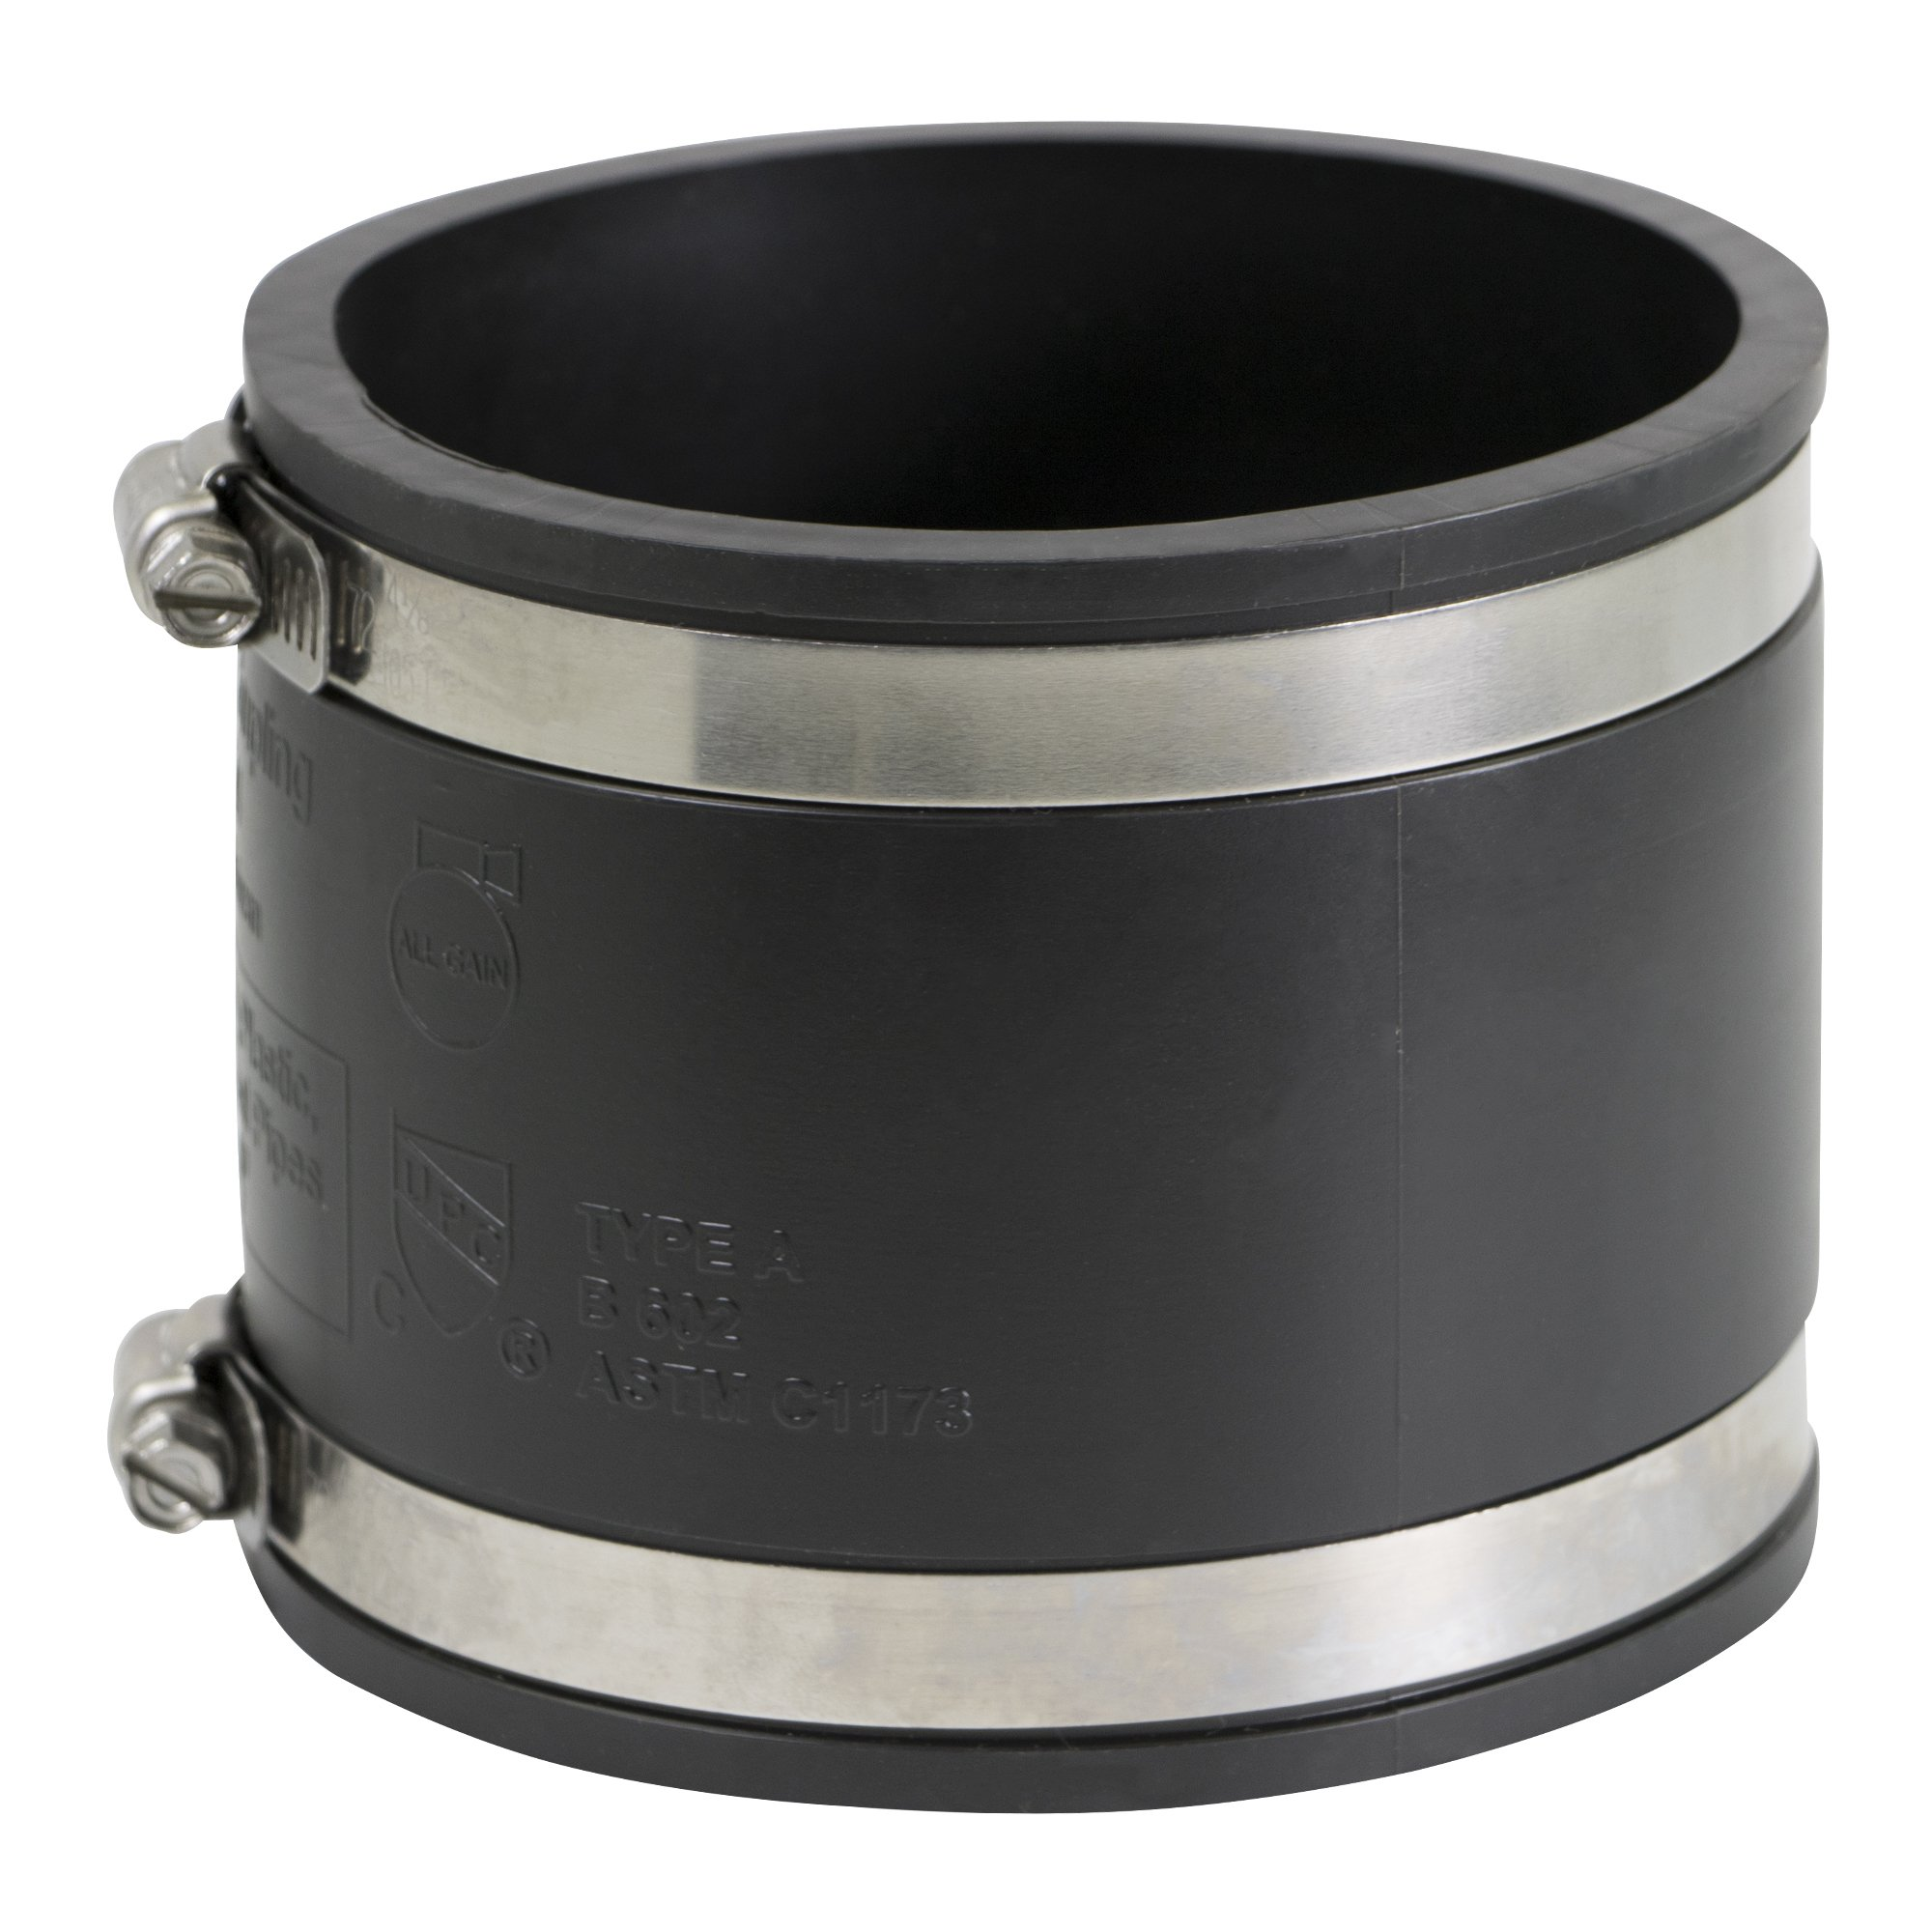 EVERCONNECT 4839x10 Flexible PVC Coupling with Stainless Steel clamps 8'', Black (pack of 10)